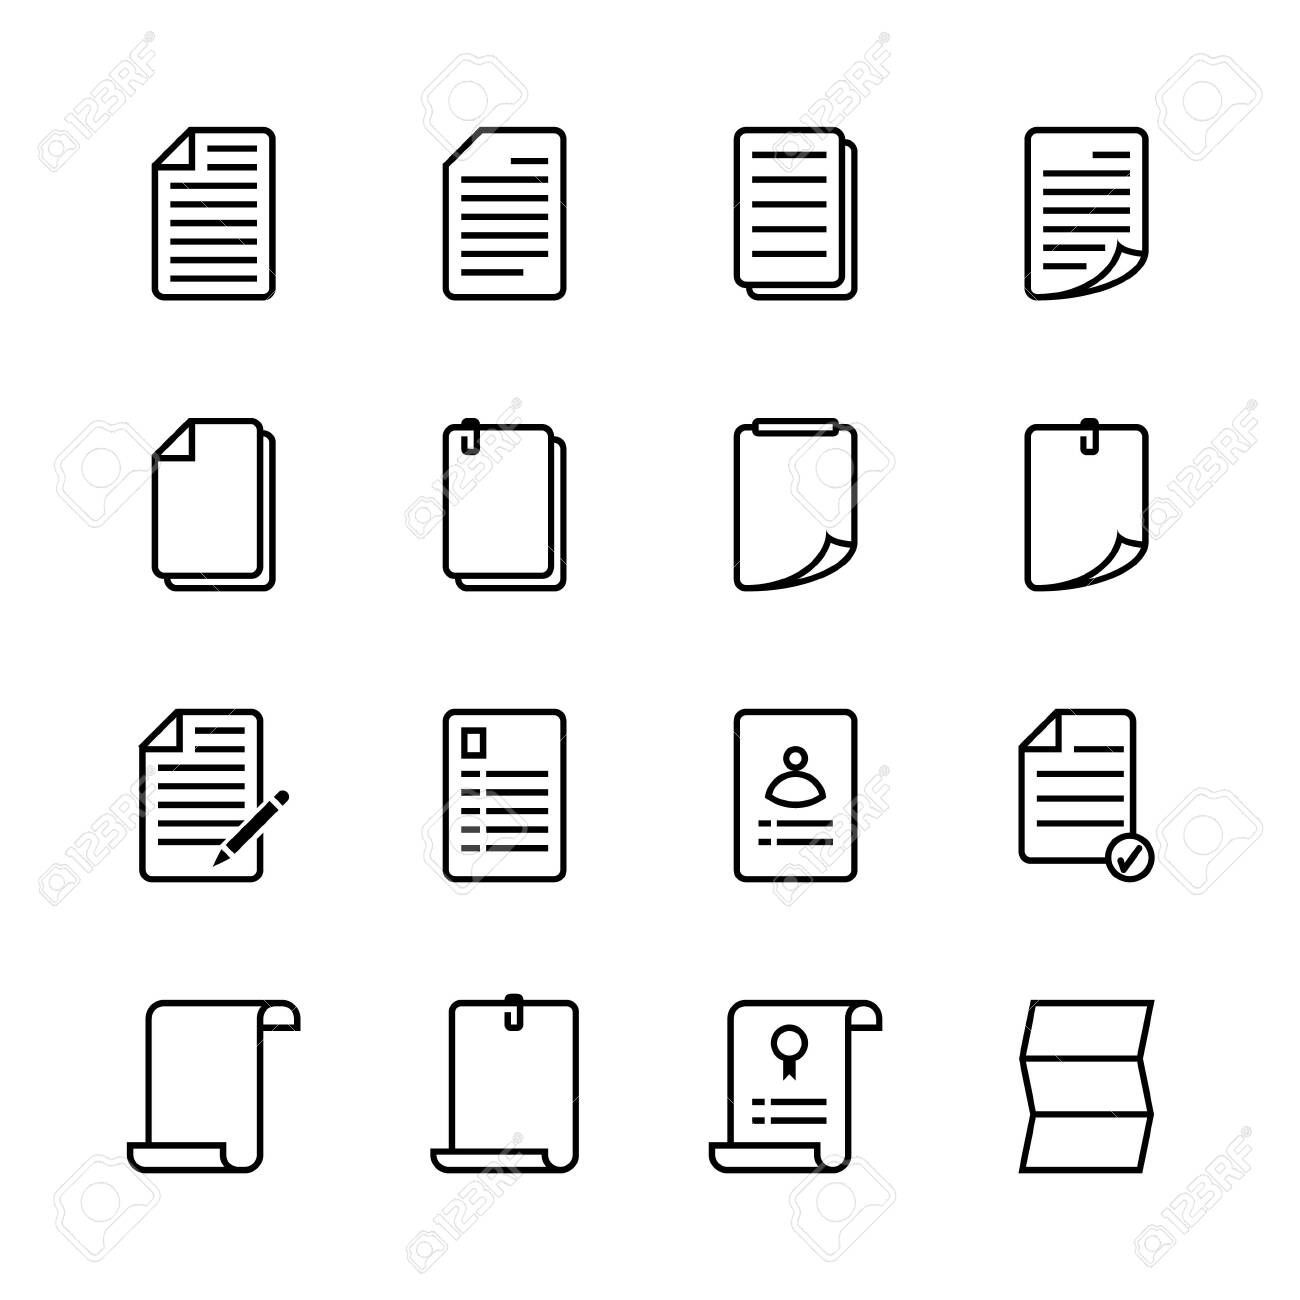 Paper sheet icon set. Line icon style. Vector illustration. - 149988868